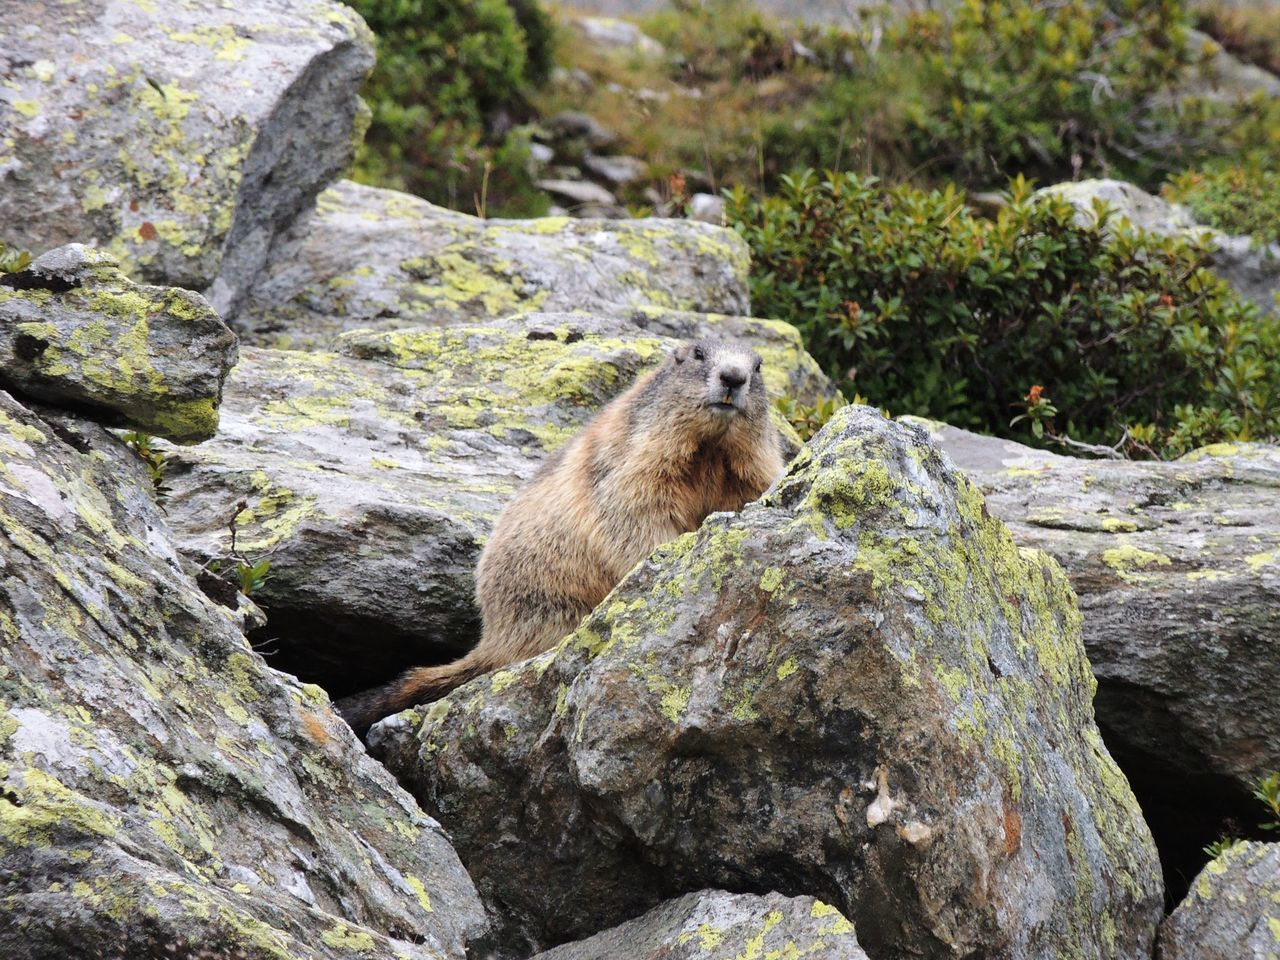 Close-Up Of Marmot On Rock